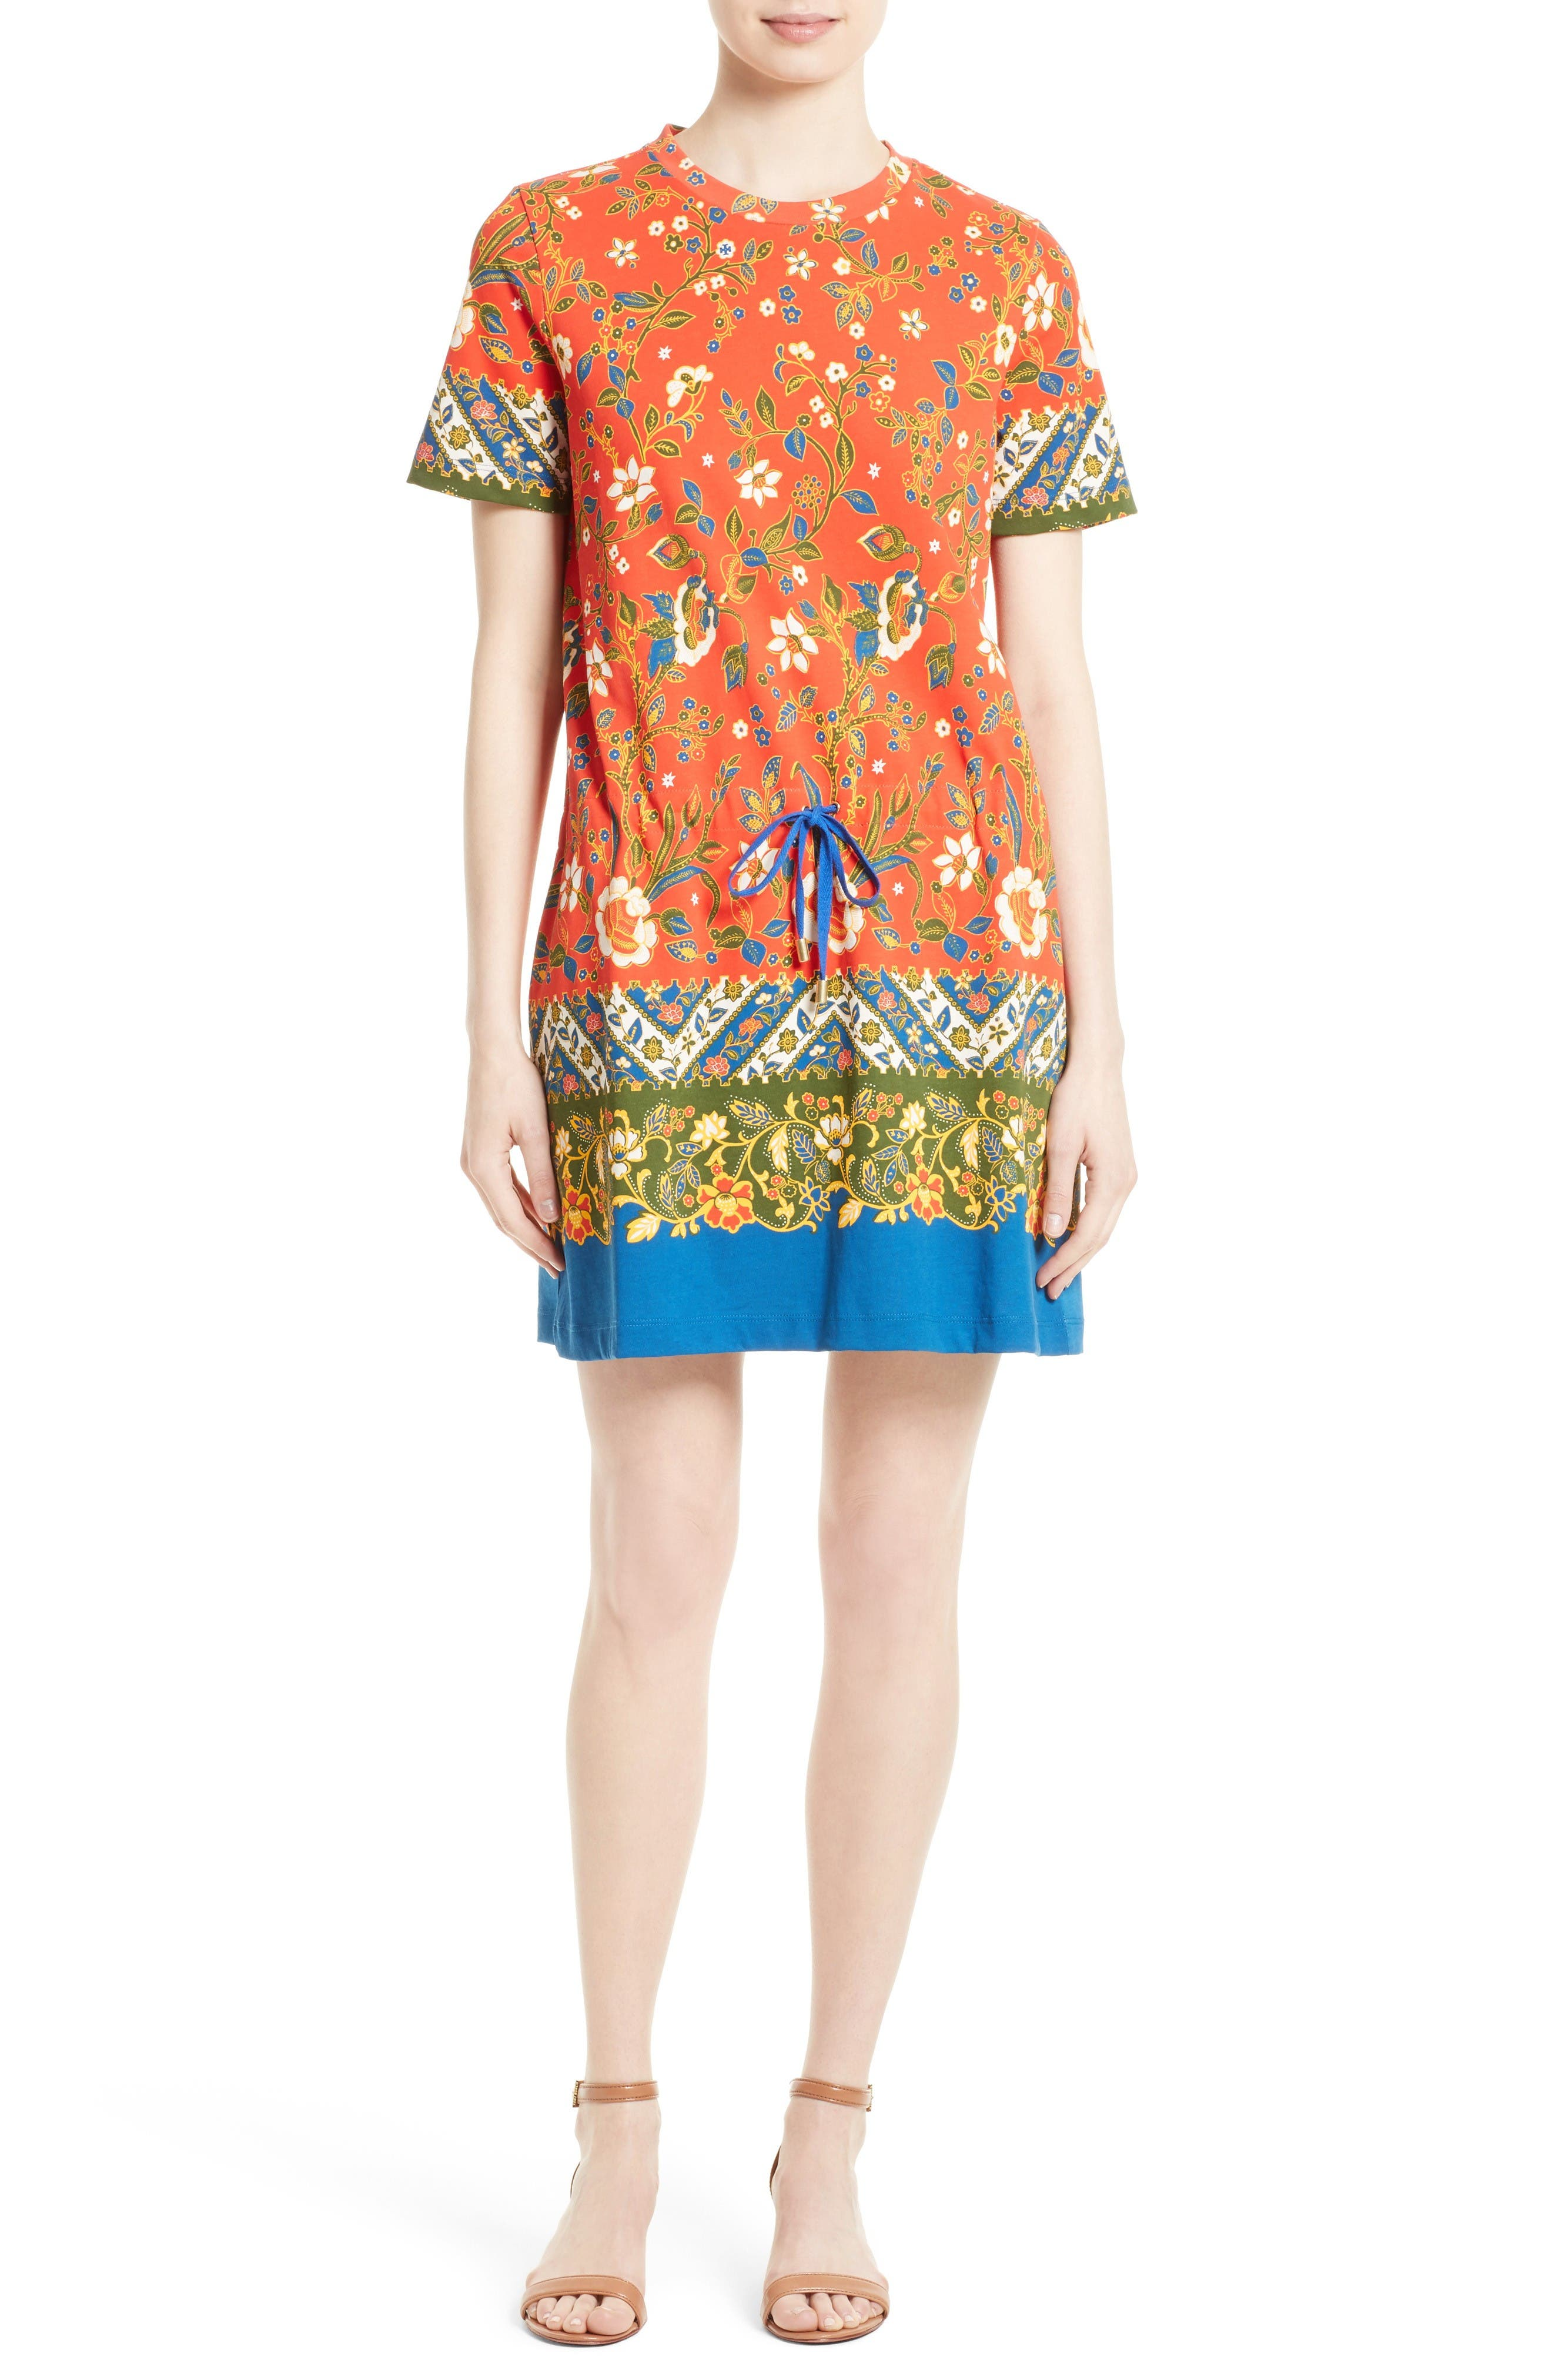 Alternate Image 1 Selected - Tory Burch Jessie Print T-Shirt Dress